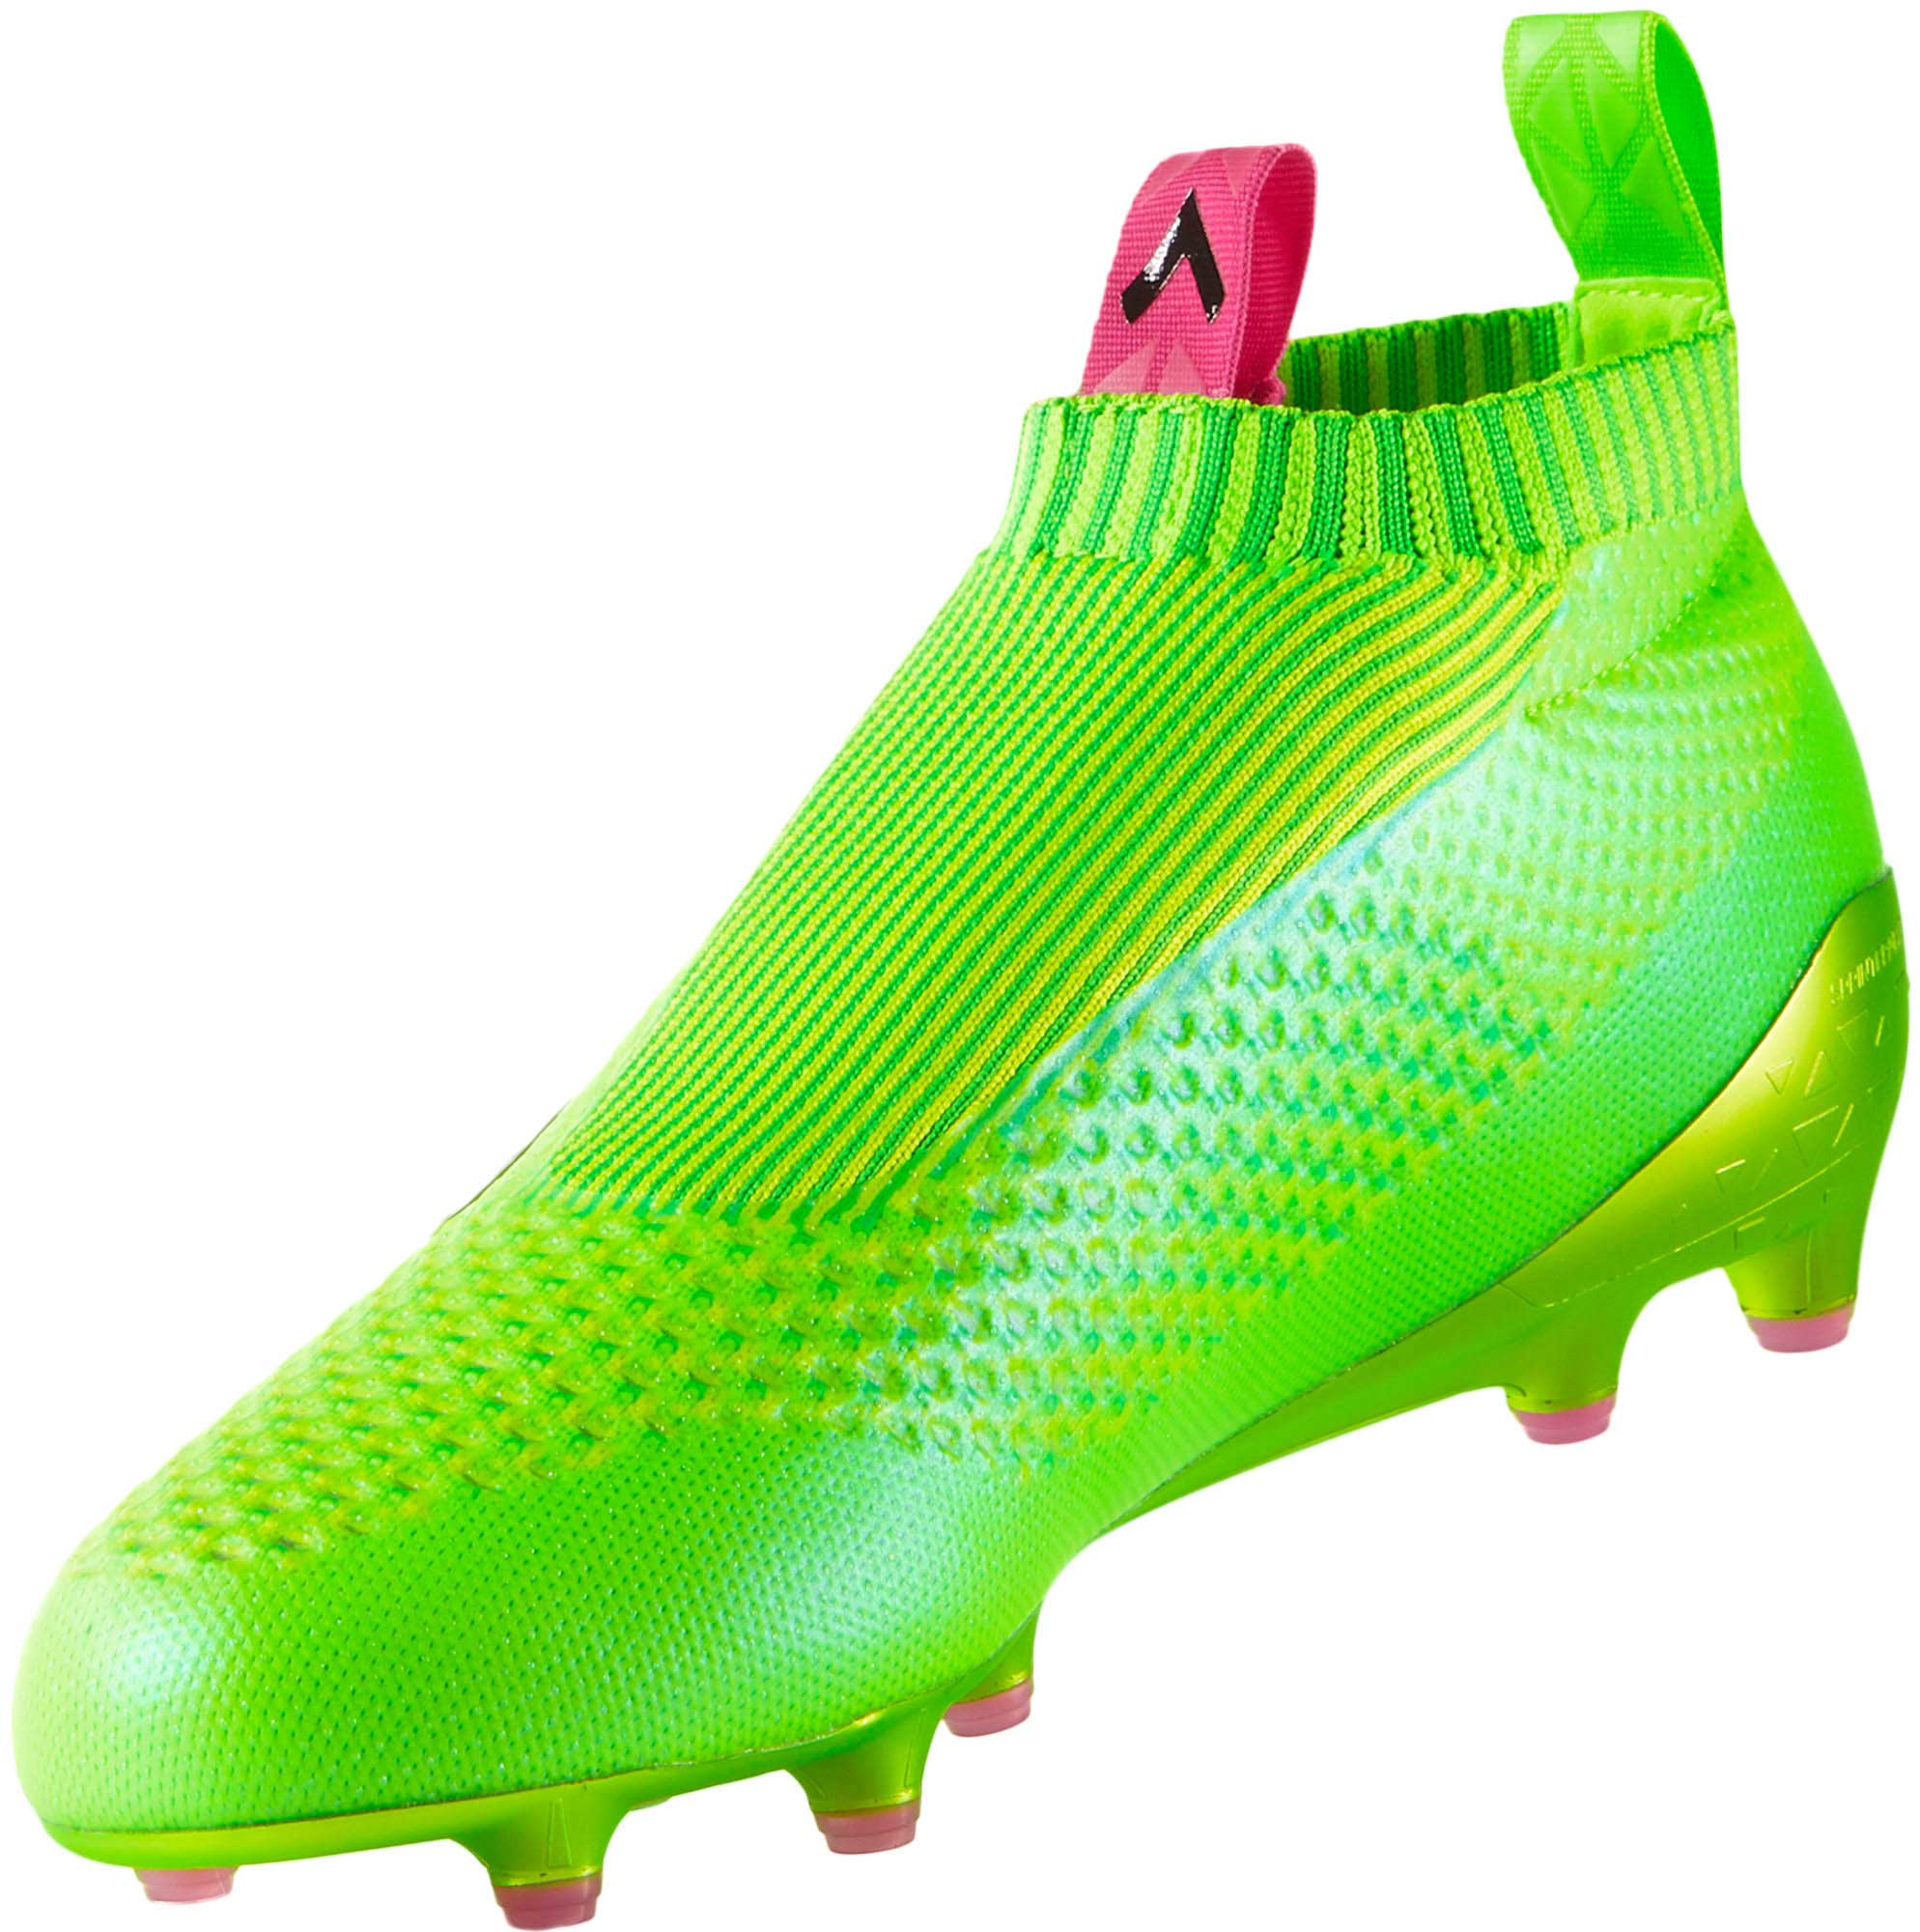 Shop a variety of Nike Mercurial soccer cleats at DICK'S Sporting Goods. Get the latest deals on Mercurial soccer cleats and browse a range of standout styles. If you find a lower price on Nike Mercurial soccer cleats somewhere else, we'll match it with our Best Price Guarantee.